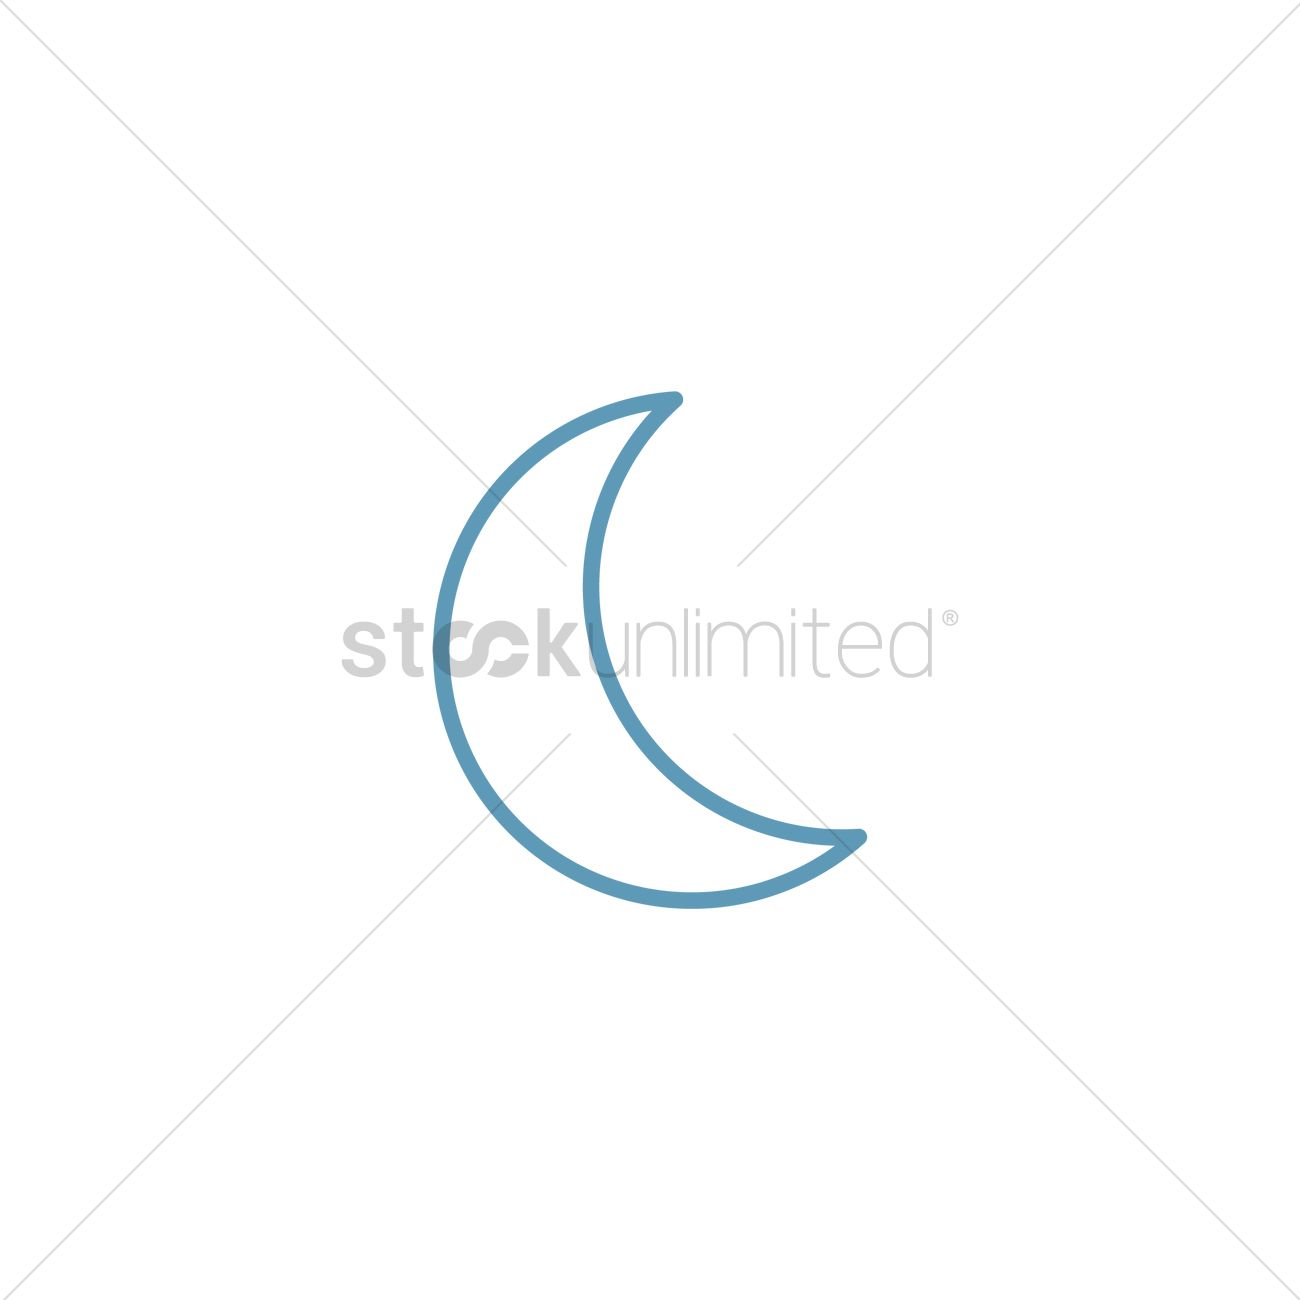 free crescent moon vector image 1283475 stockunlimited stockunlimited